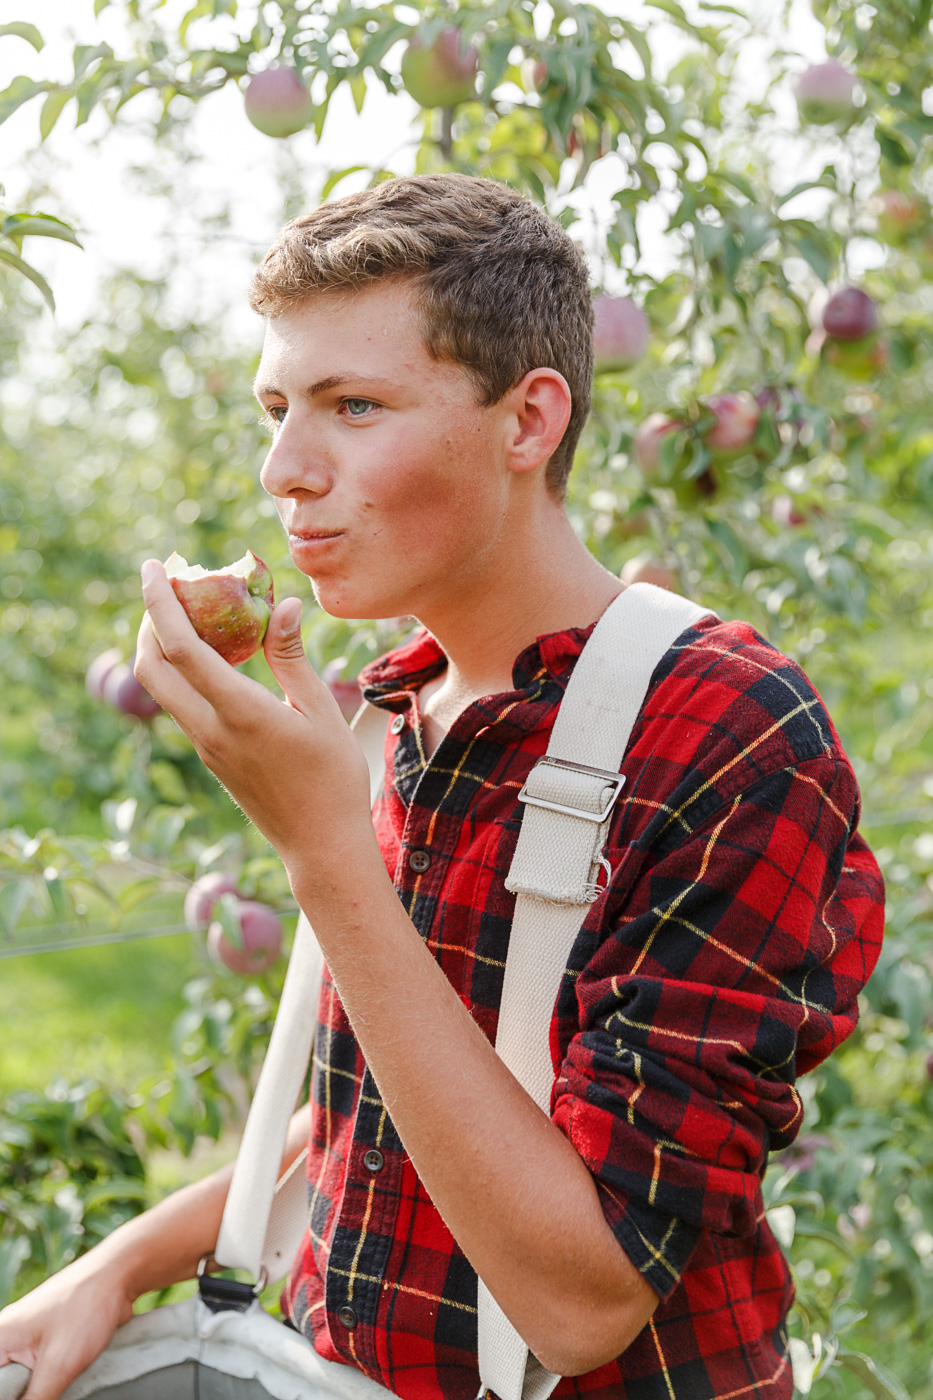 Charlie Fahey samples an organic apple while picking apples in their family run orchard, Peck and Bushel, in Colgate, WI.